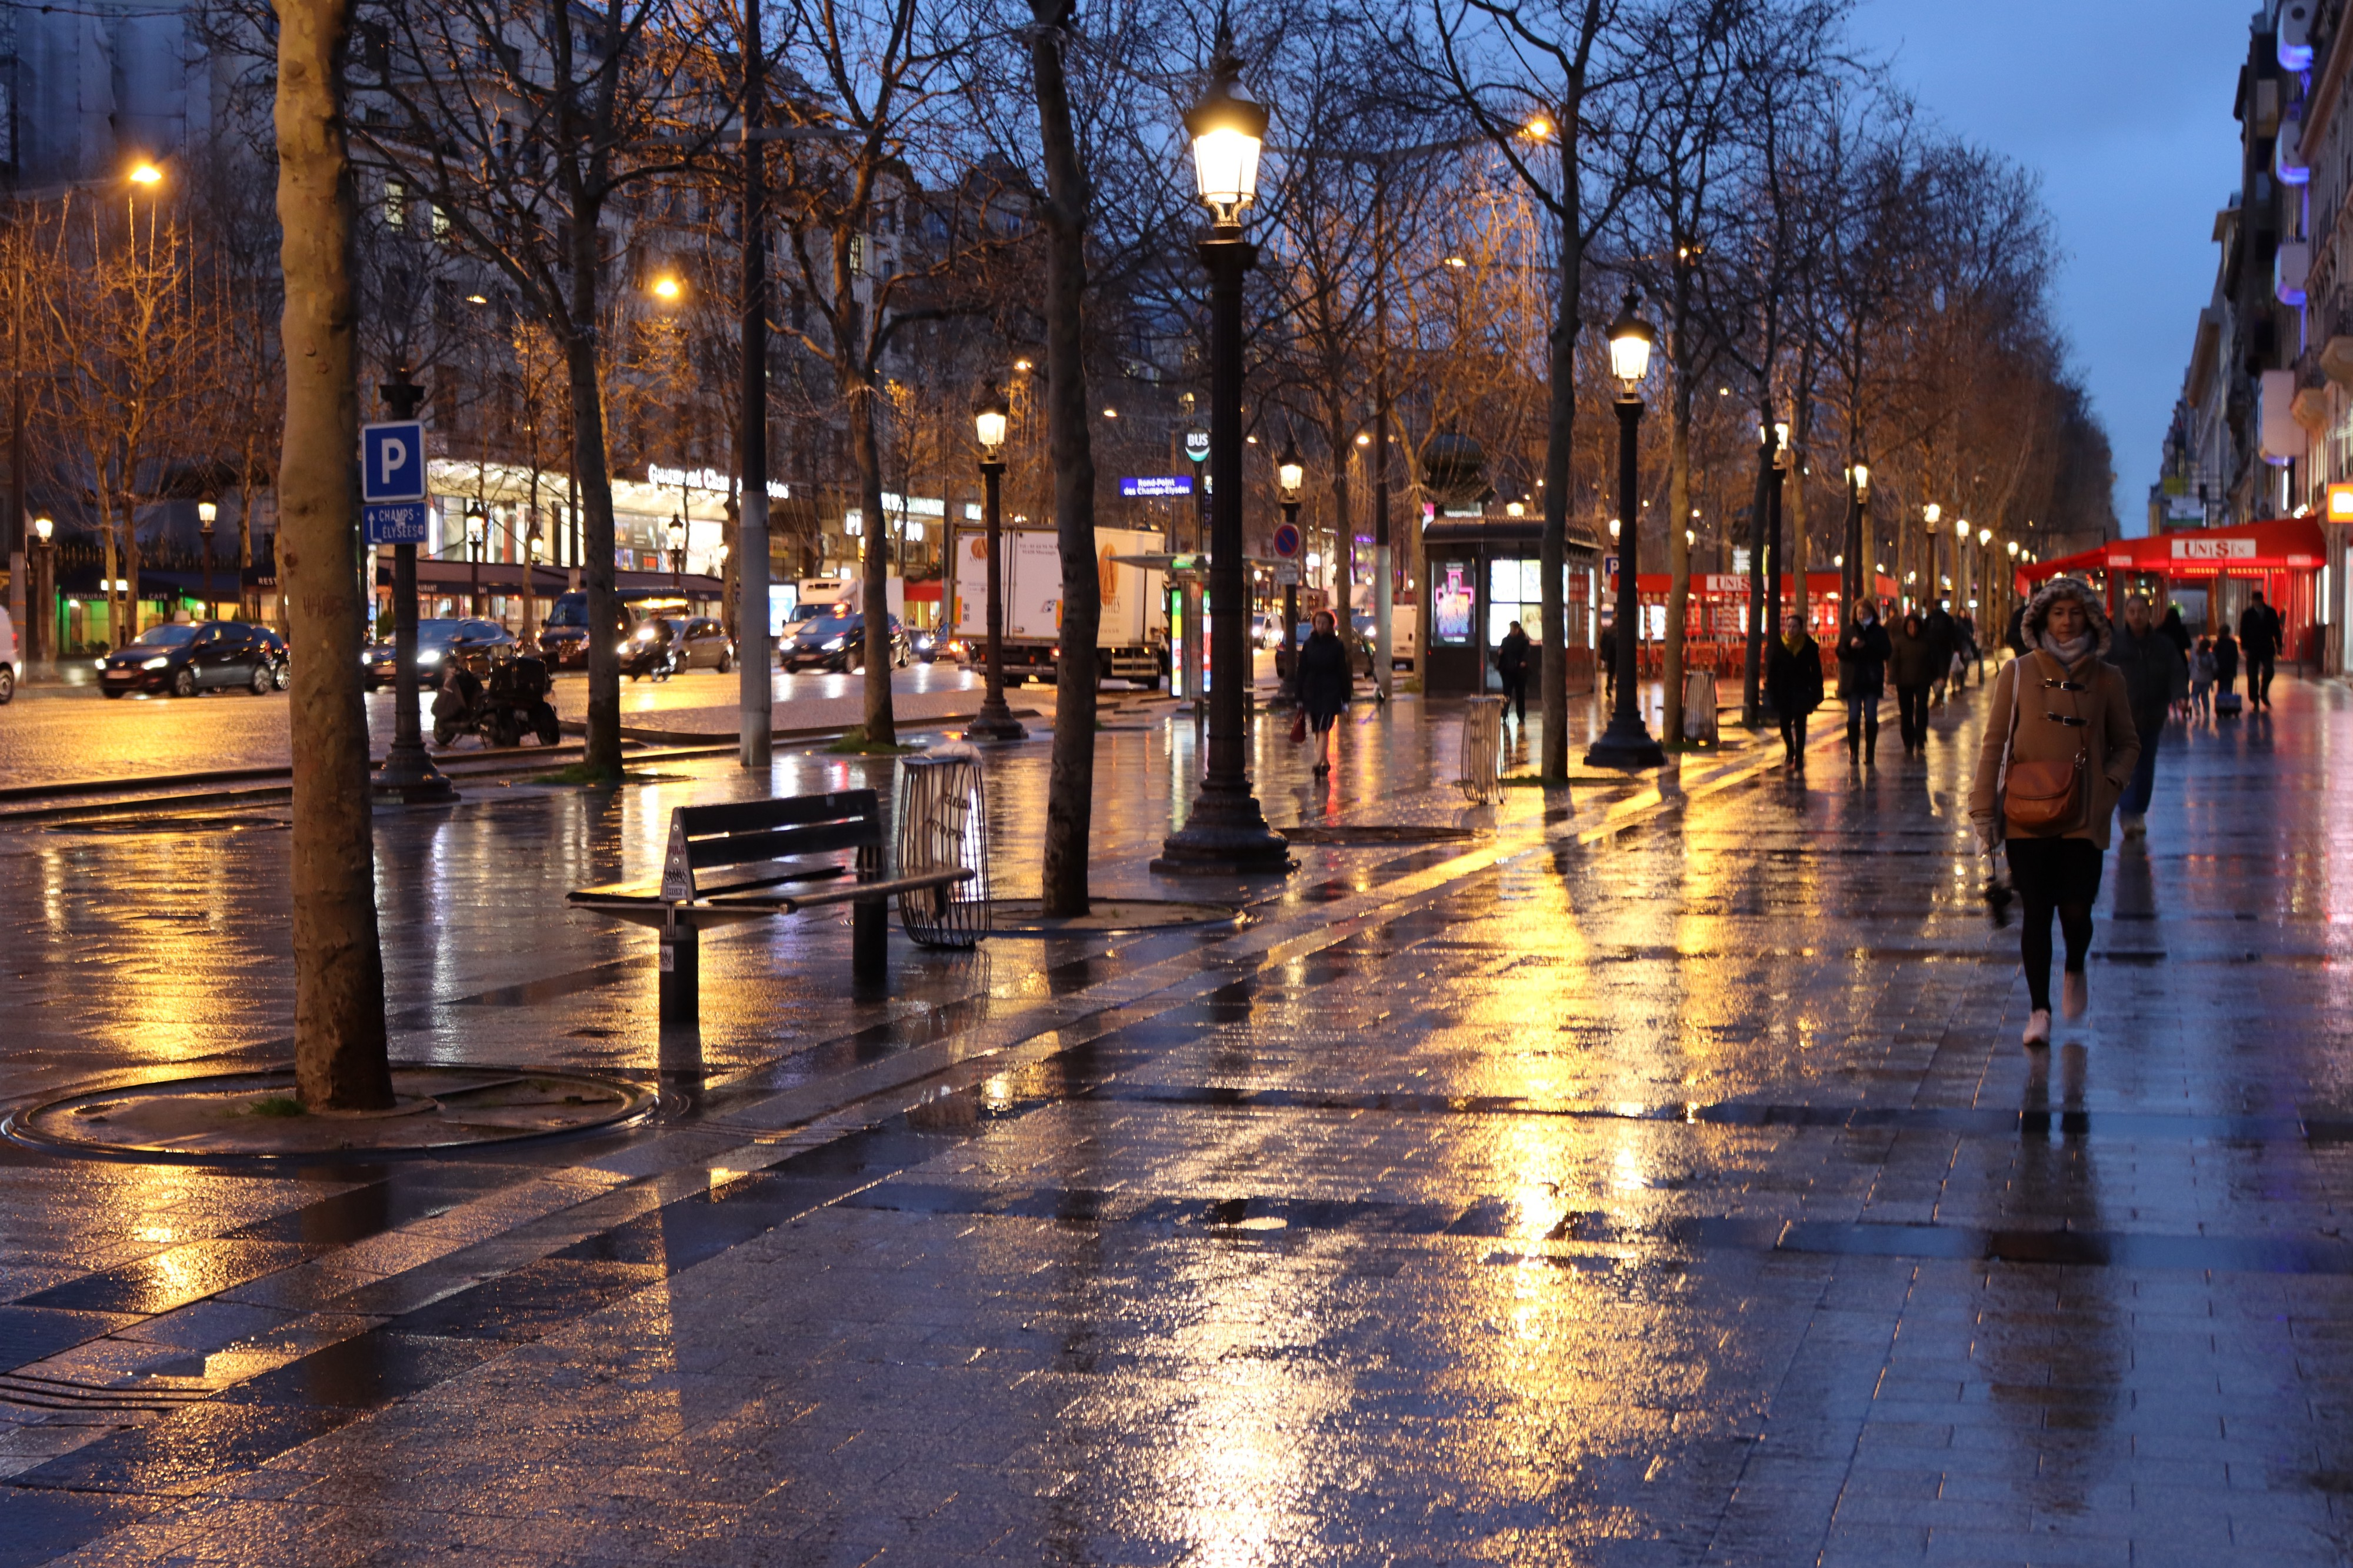 Early morning lamplight on the Champs Elysee